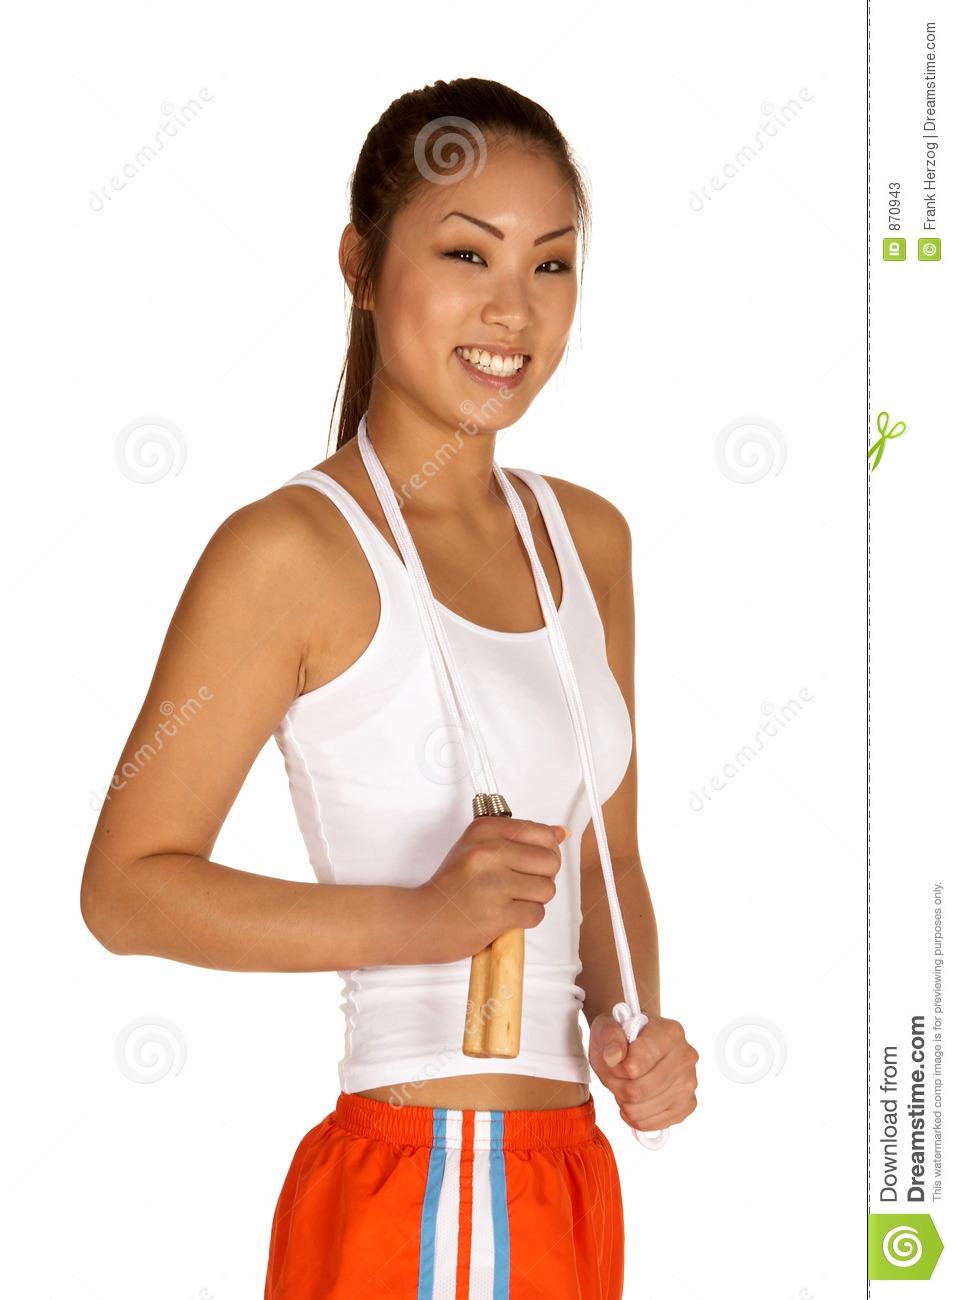 Smiling Young Asian Woman with Jump Rope